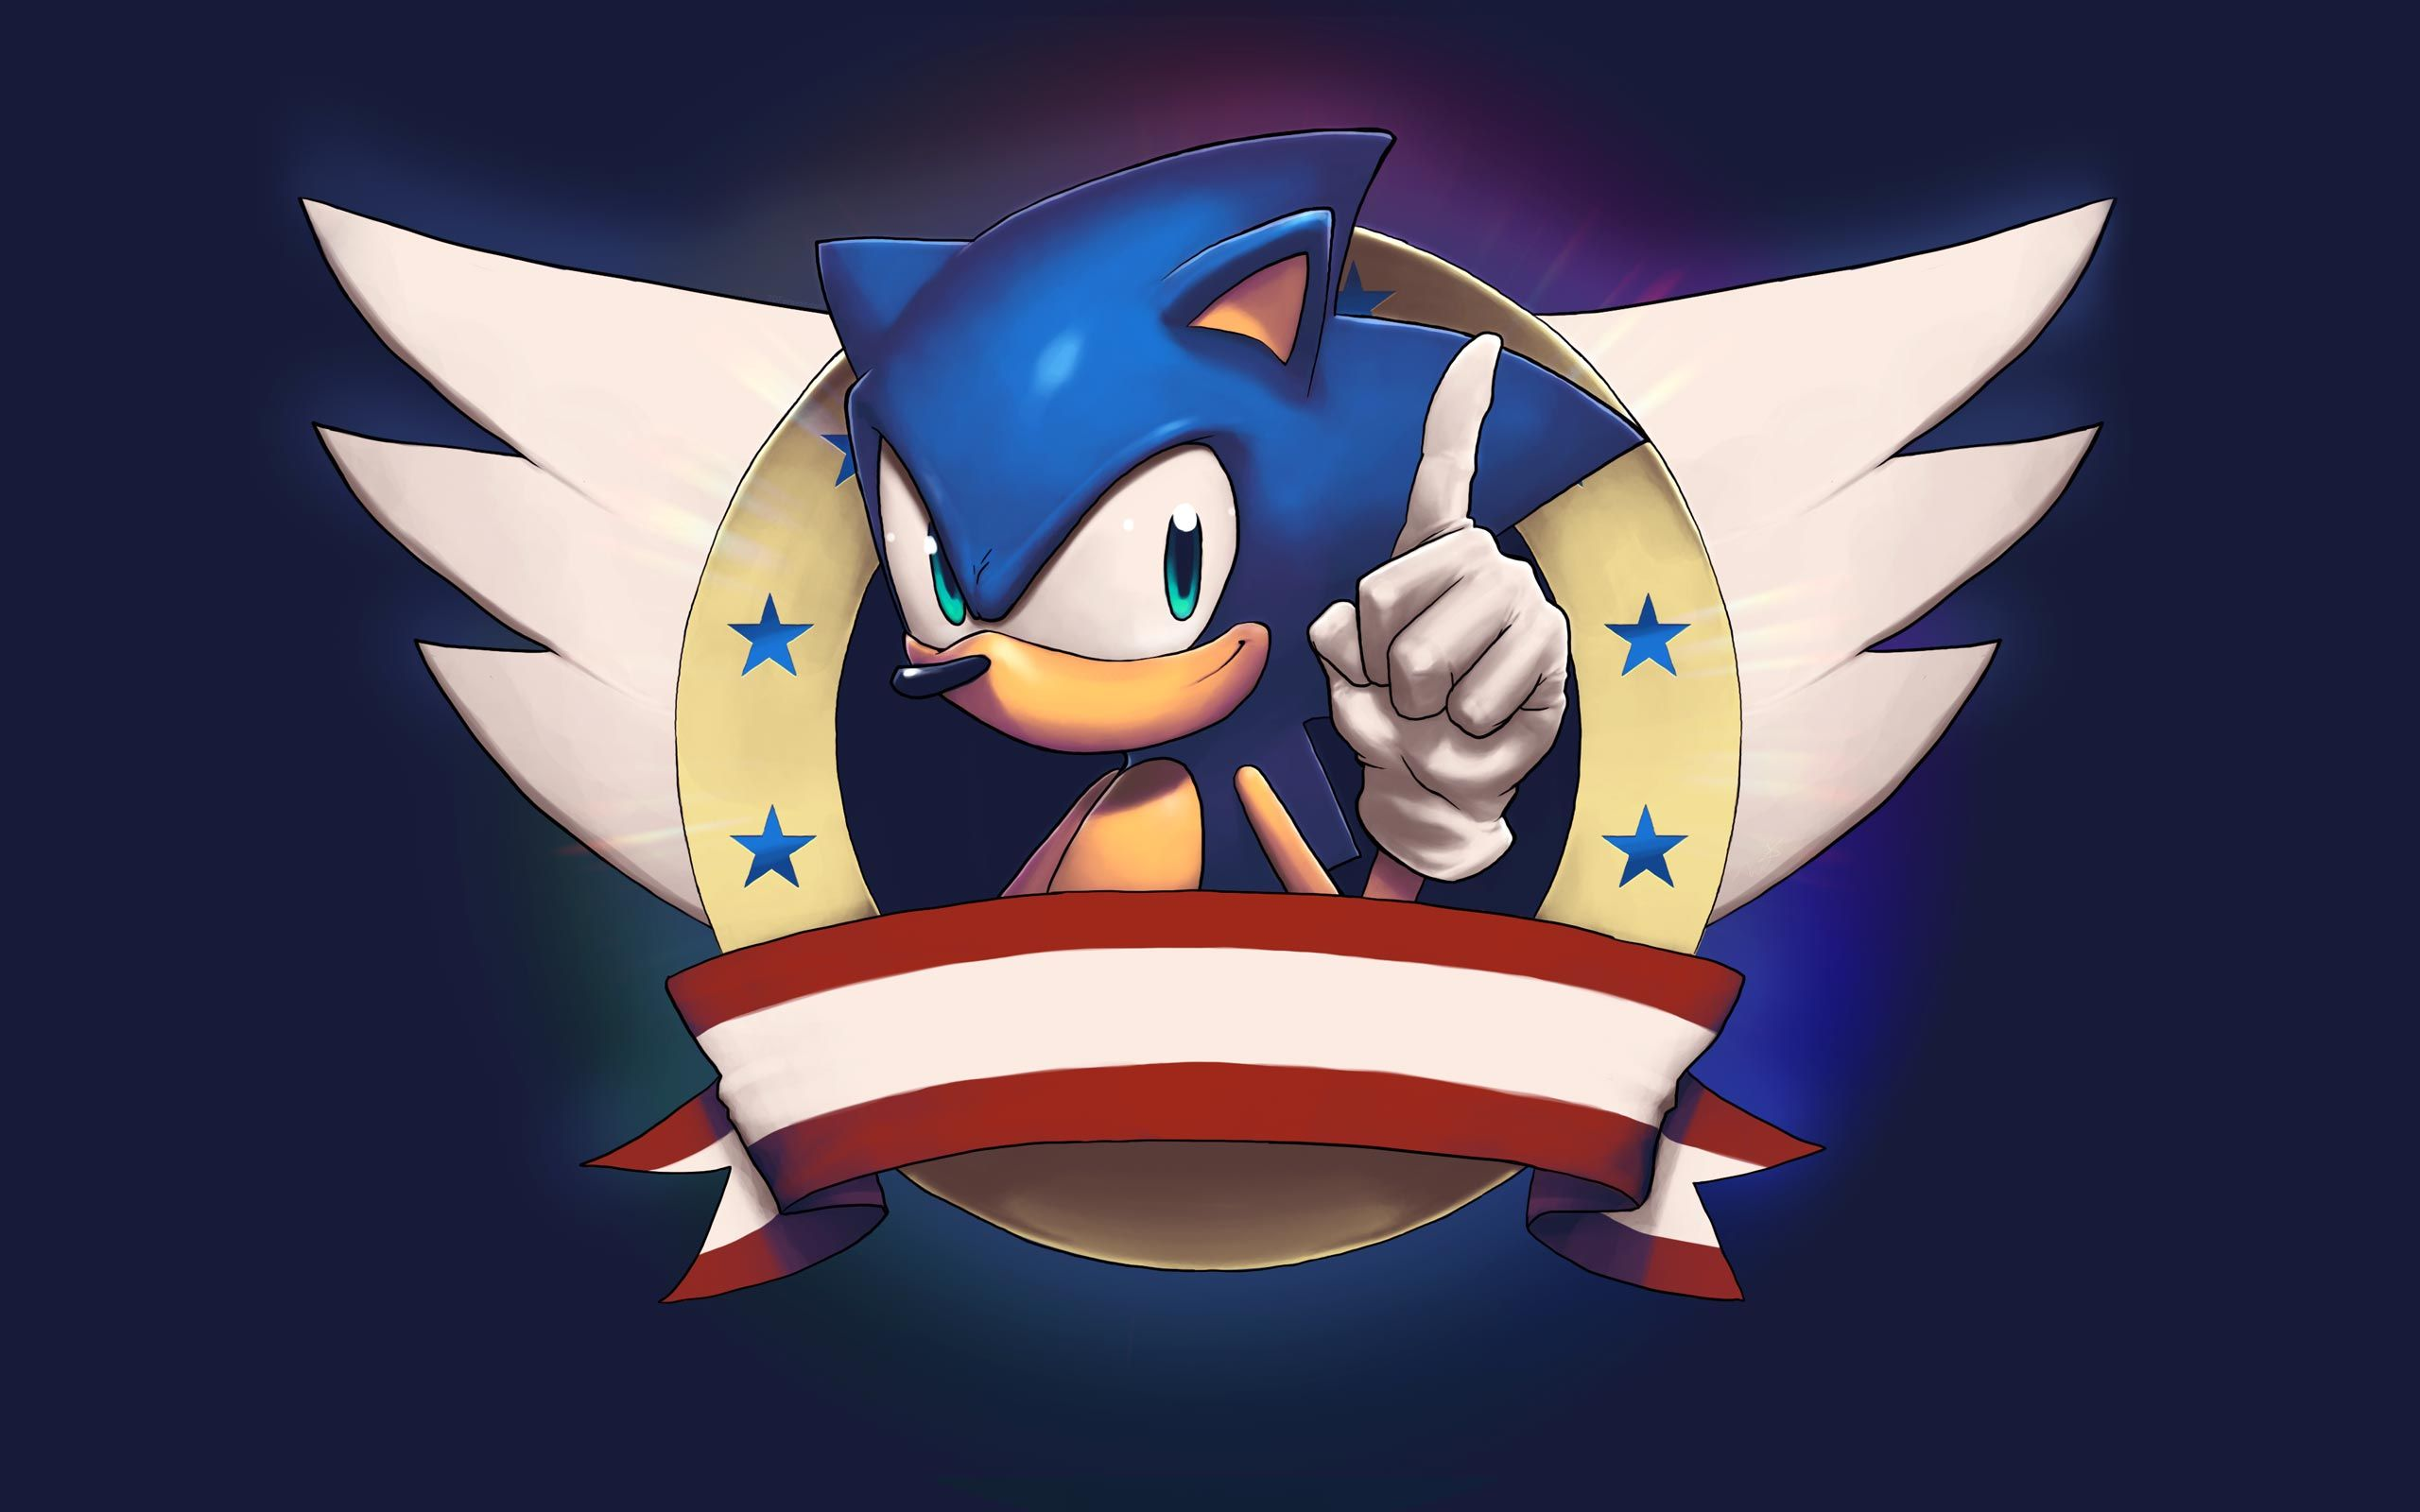 Classic Sonic the Hedgehog Wallpaper Wallpapers